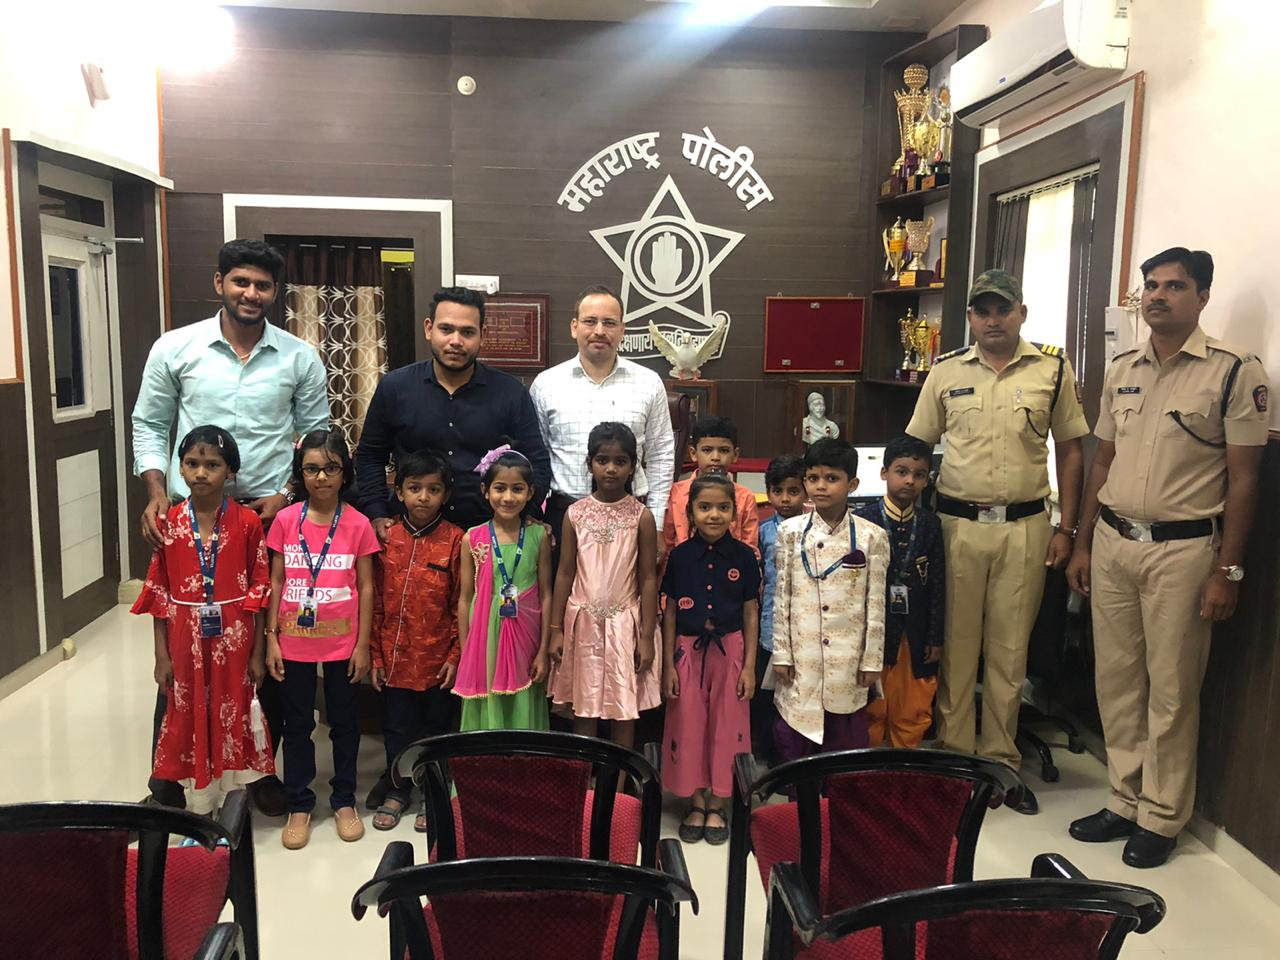 group-photo-with-police-officer-and-some-vijaya-convent-sutdents